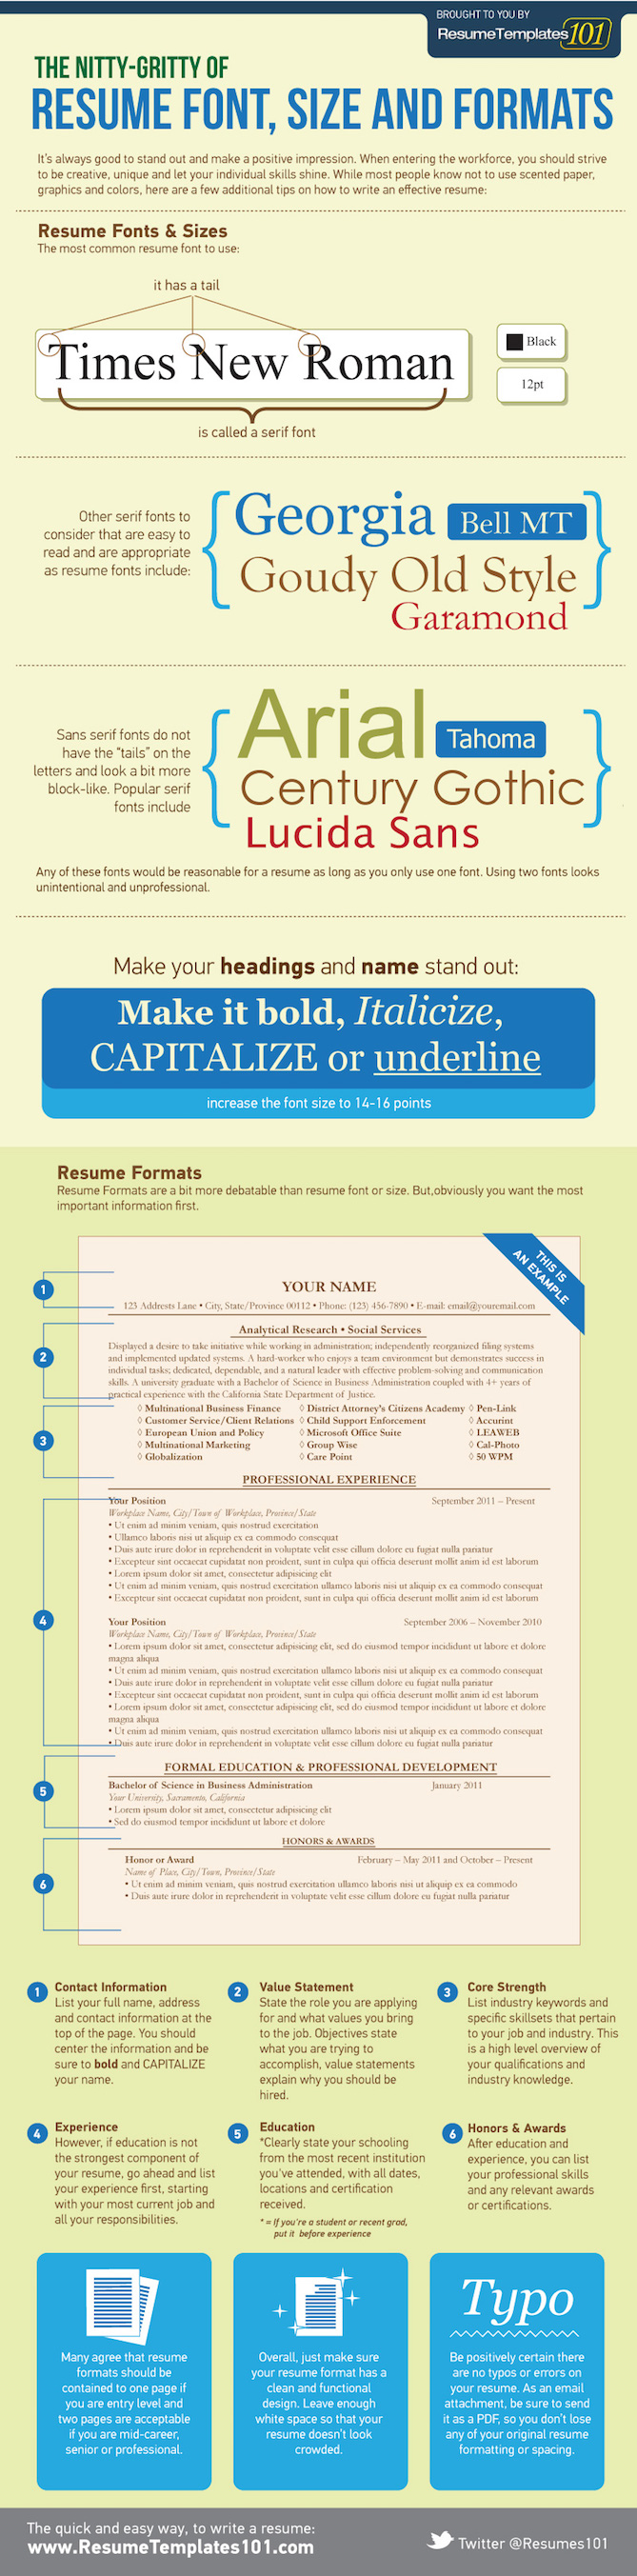 Awesome Infographic On How To Format A Resume Using The Best Font Type, Font Size,